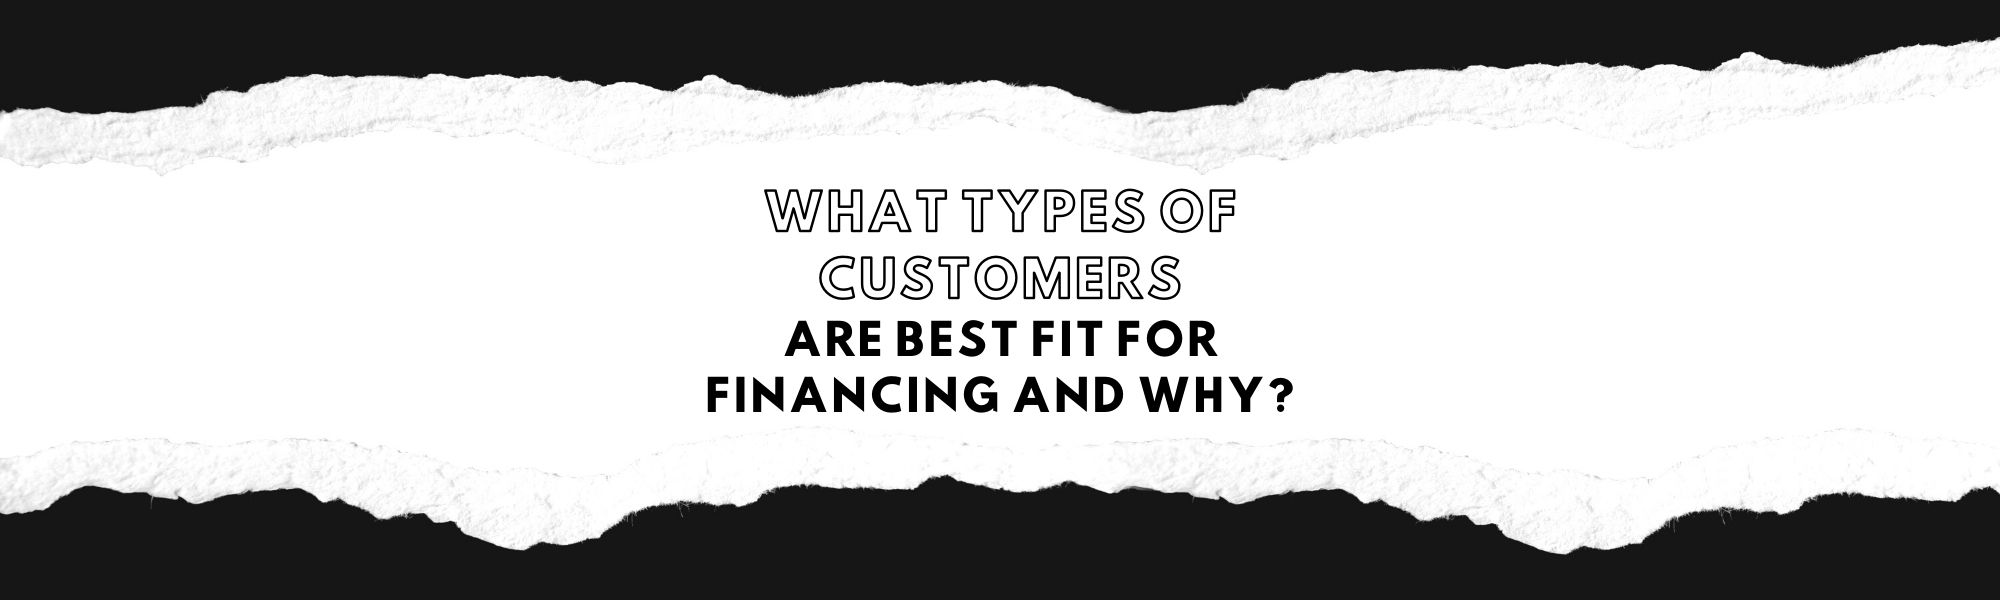 What Types of Customers are Best Fit for Financing and Why?